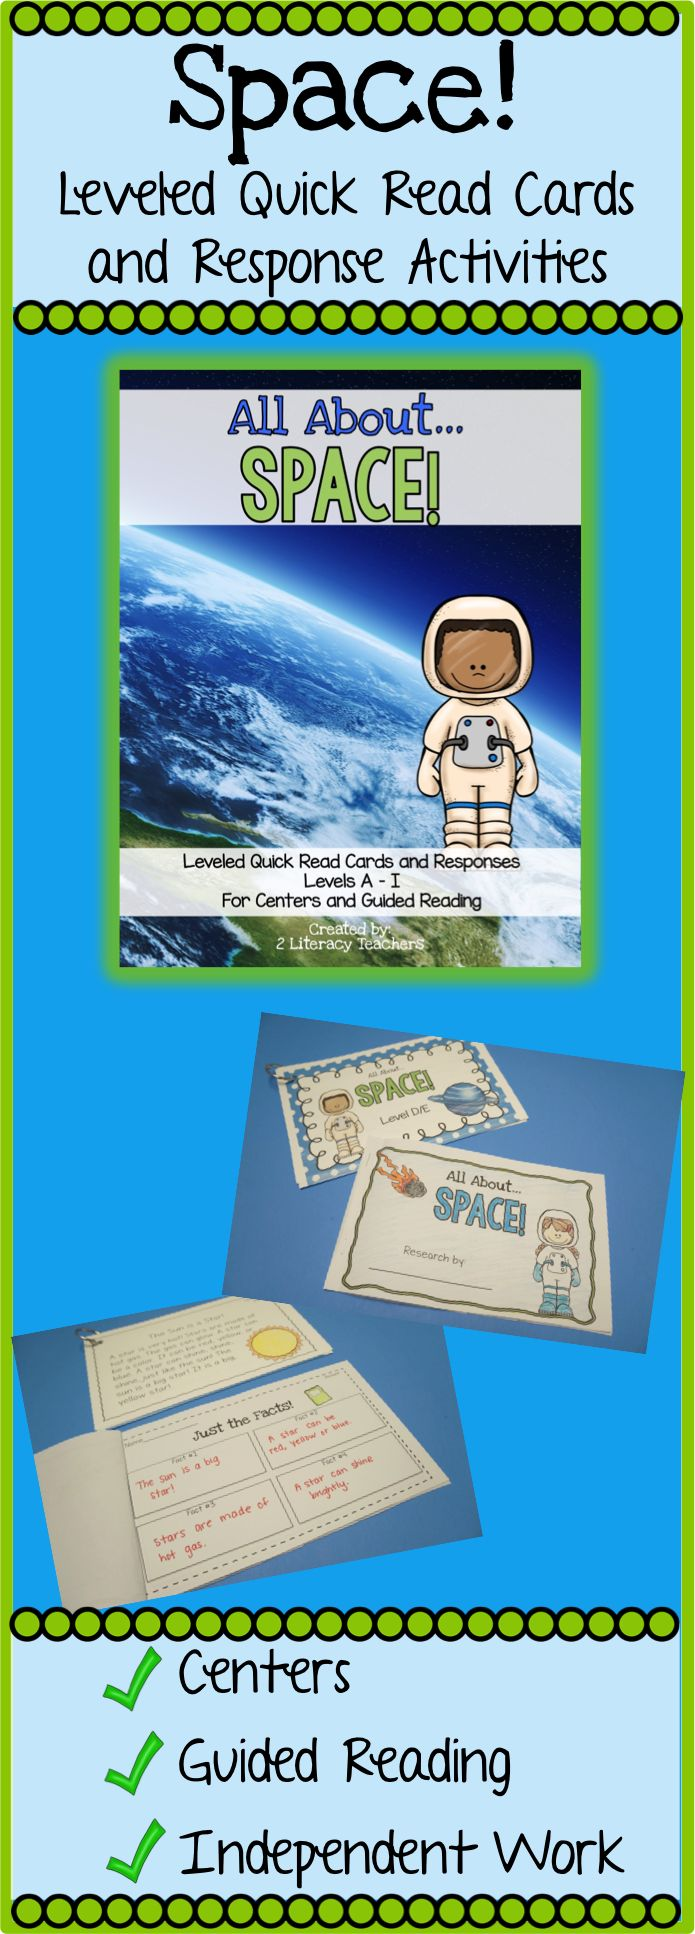 All About Space! Leveled Quick Read Cards are perfect for independent practice, guided reading and literacy centers! These are leveled cards, A-I, that allow students to practice important reading skills while working at their level. Great for differentiation and supporting all your space themes!